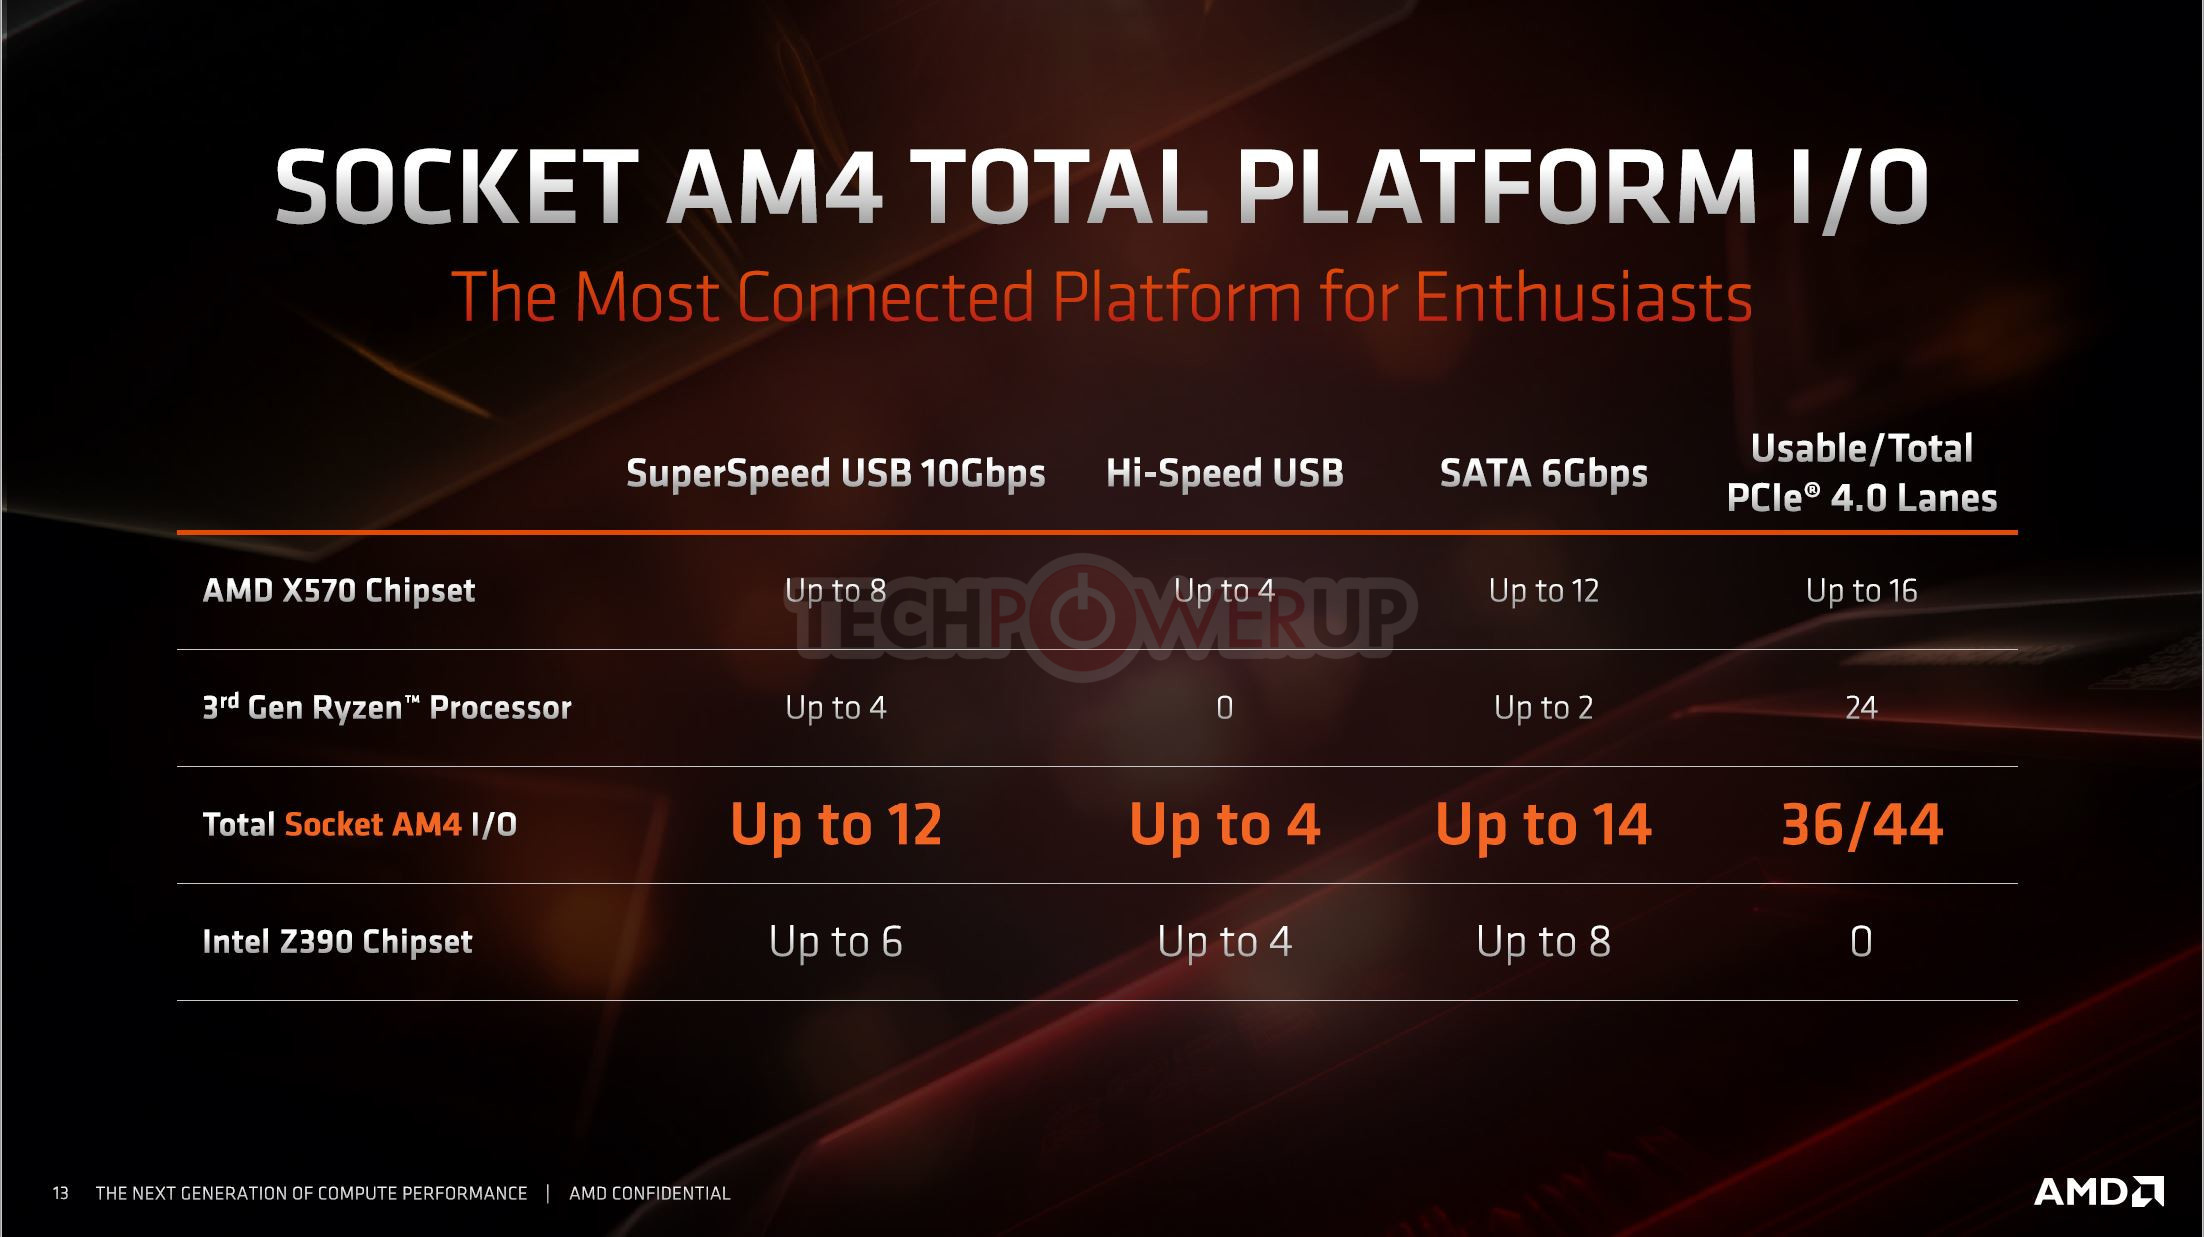 Amd X570 Puts Out Up To Twelve Sata 6g Ports And Sixteen Pcie Gen 4 Lanes Techpowerup